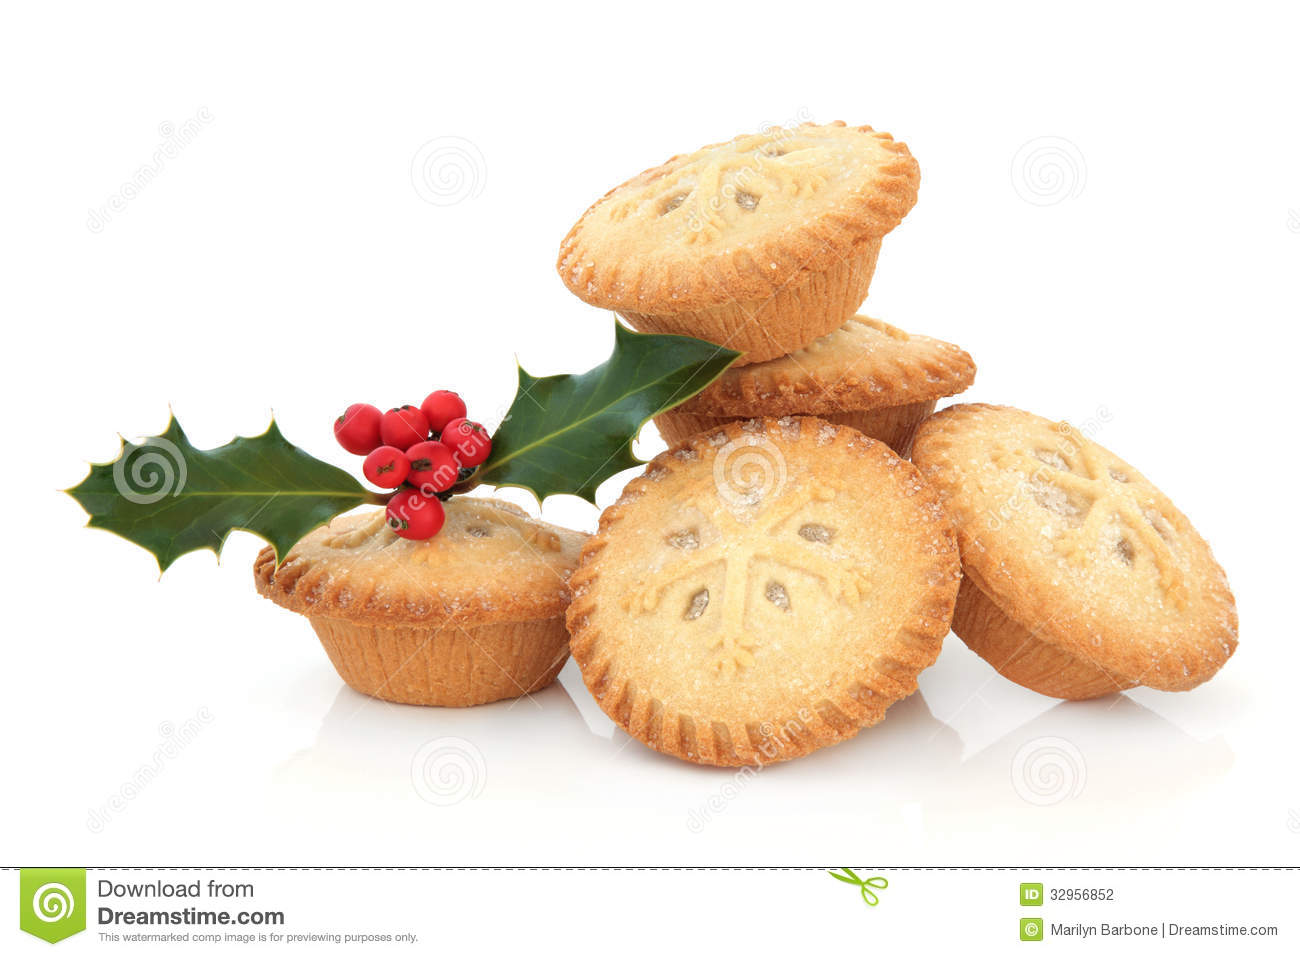 Kitchen themes coffee - Mince Pies With Snowflake Design And Holly Berry Leaf Sprig Over White